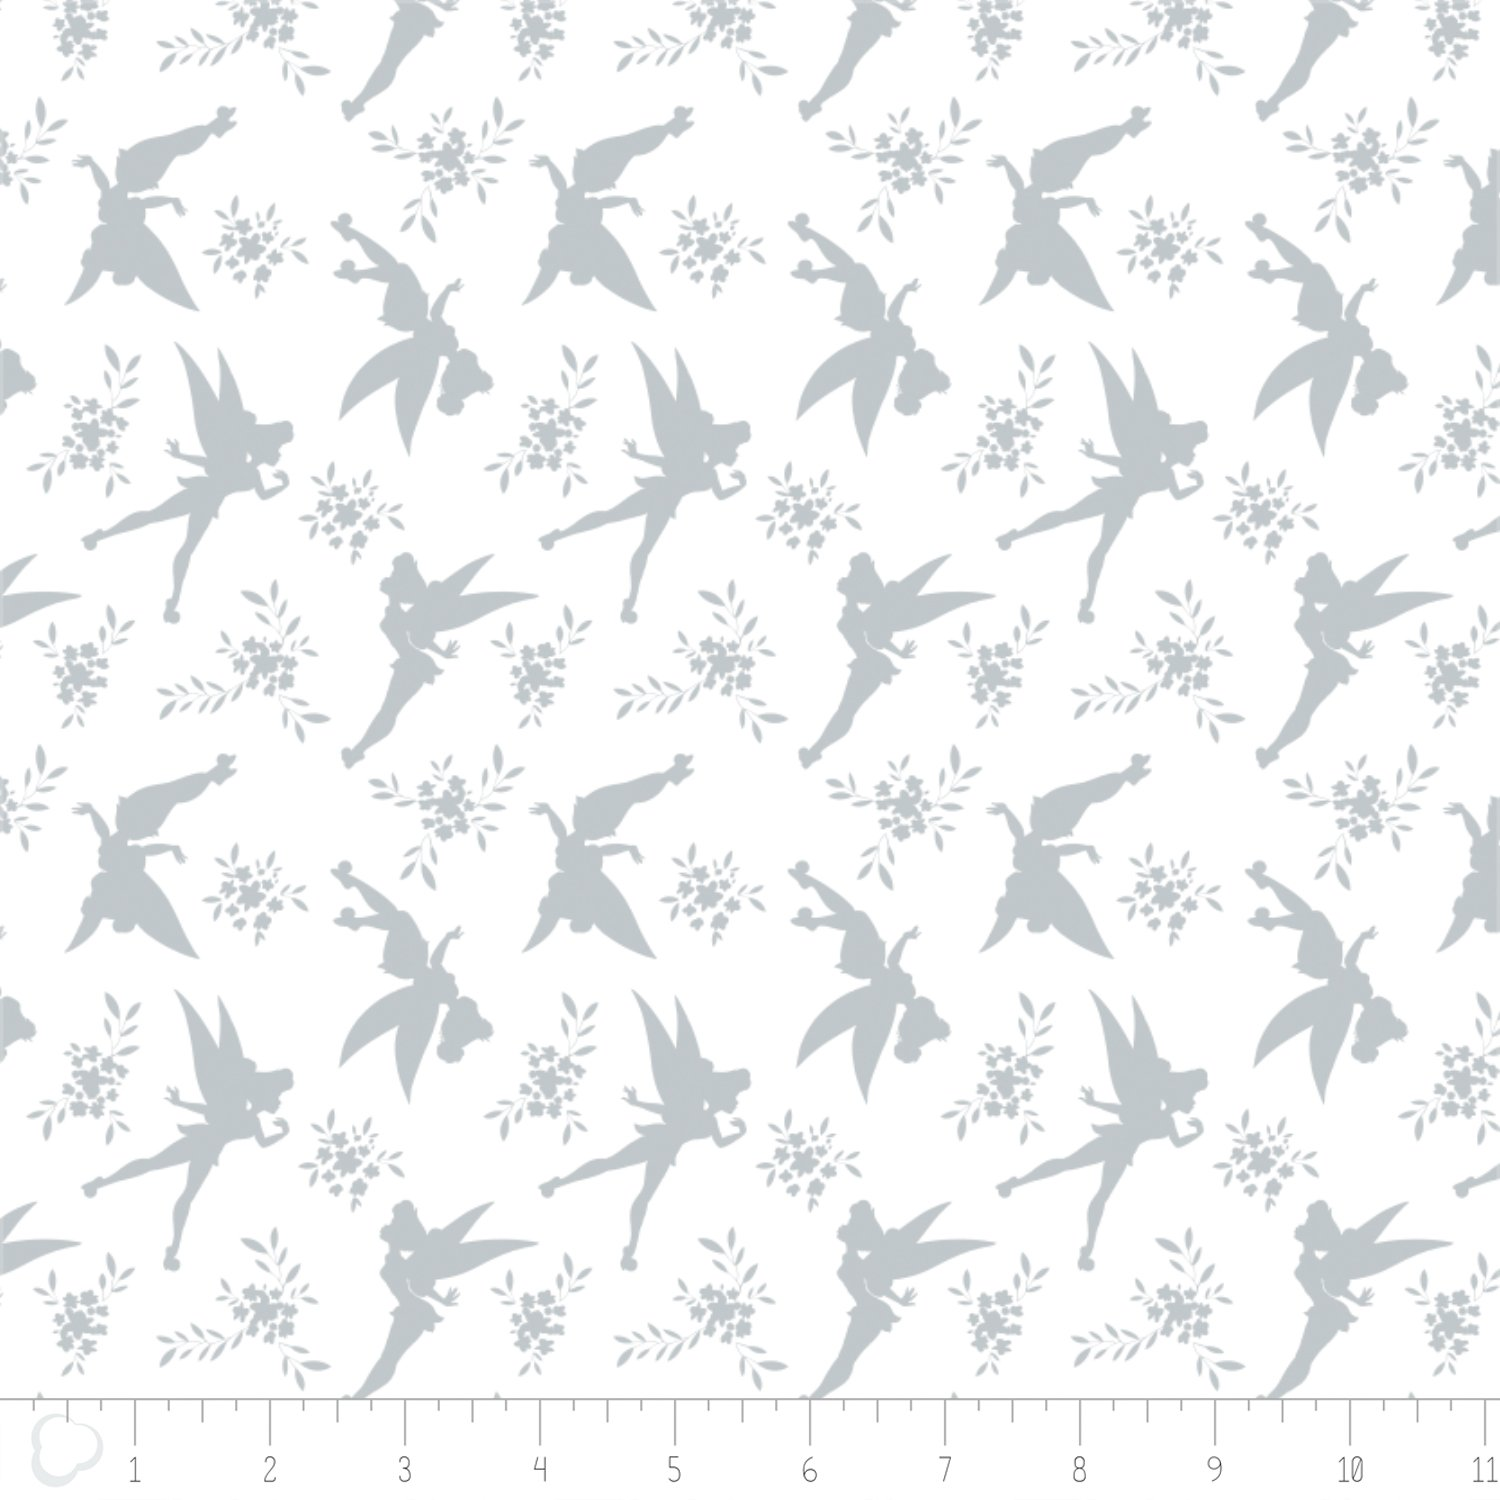 Camelot Fabrics Disney Tinker Bell Tink Silhouette 85400102-03 `